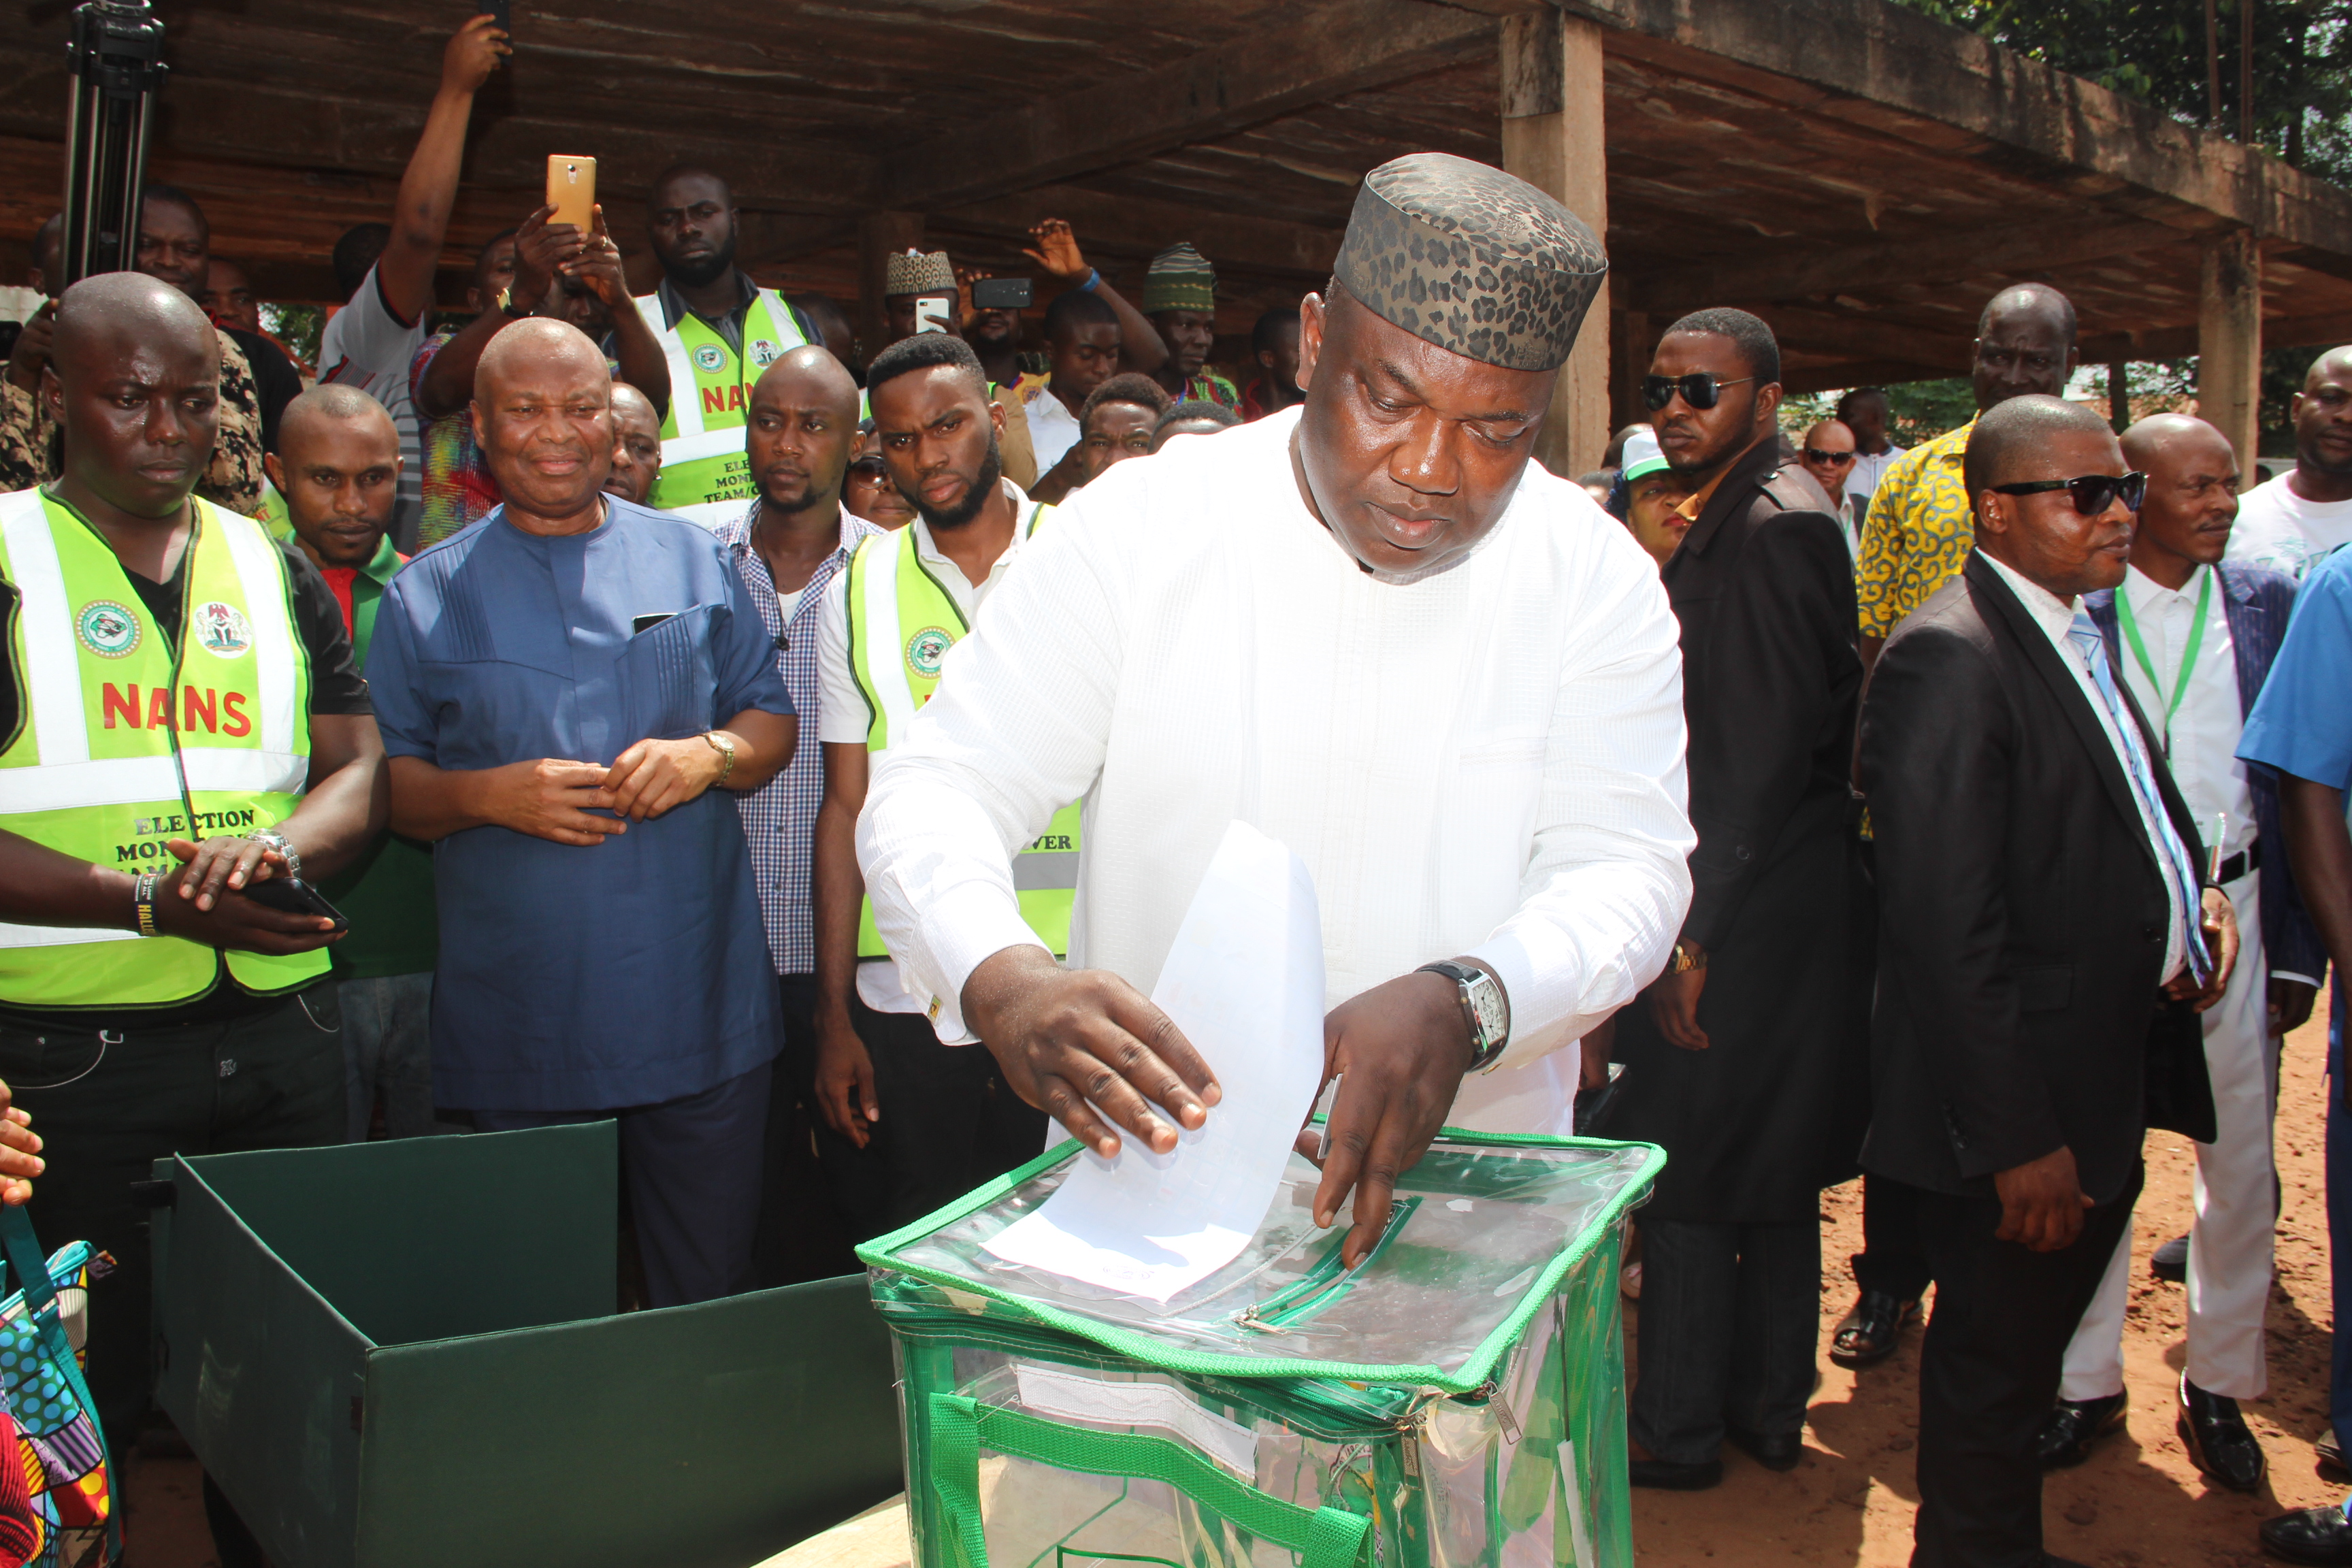 Gov. Ifeanyi Ugwuanyi of Enugu State voting at his Amube Ohom Ward 2 polling station in Orba, Udenu